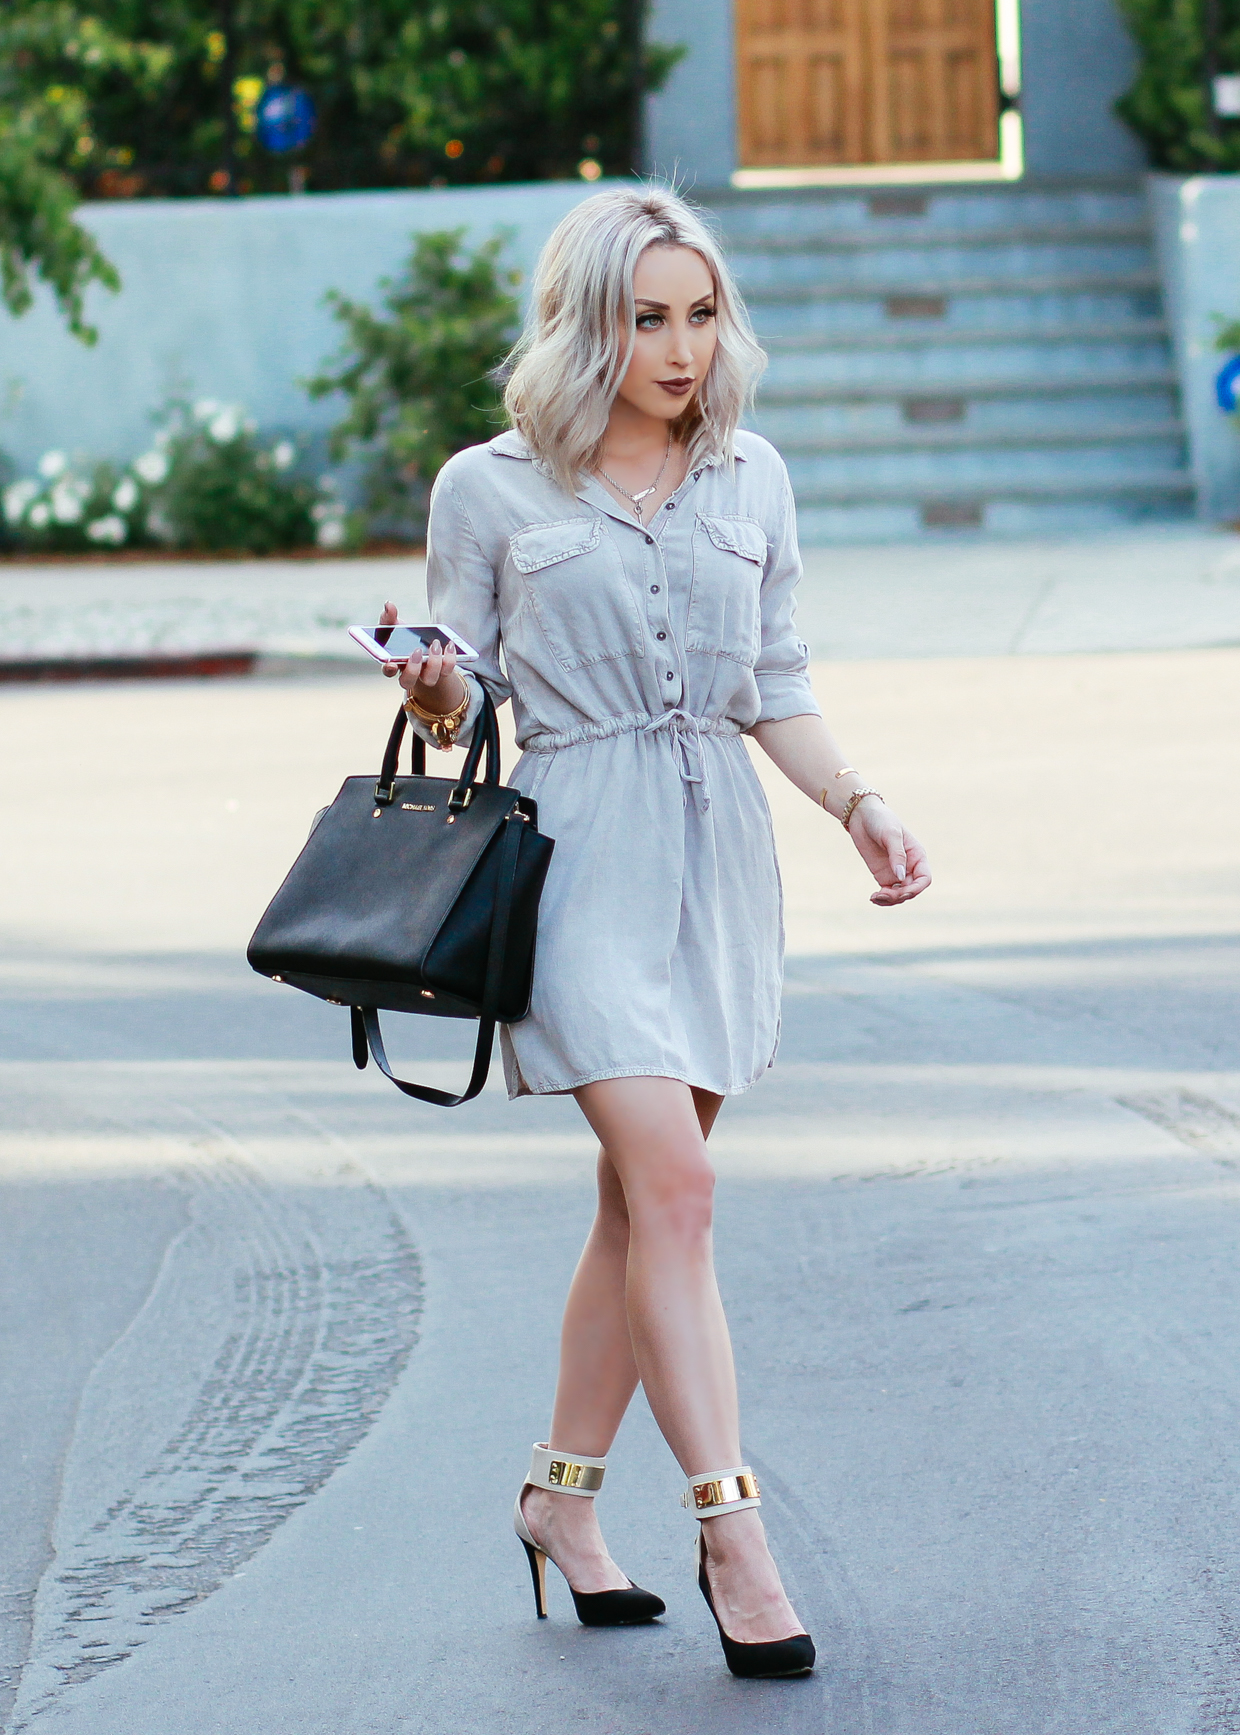 Blondie in the City | Beige Button Up Dress, Michael Kors Bag, Ankle Strap Heels